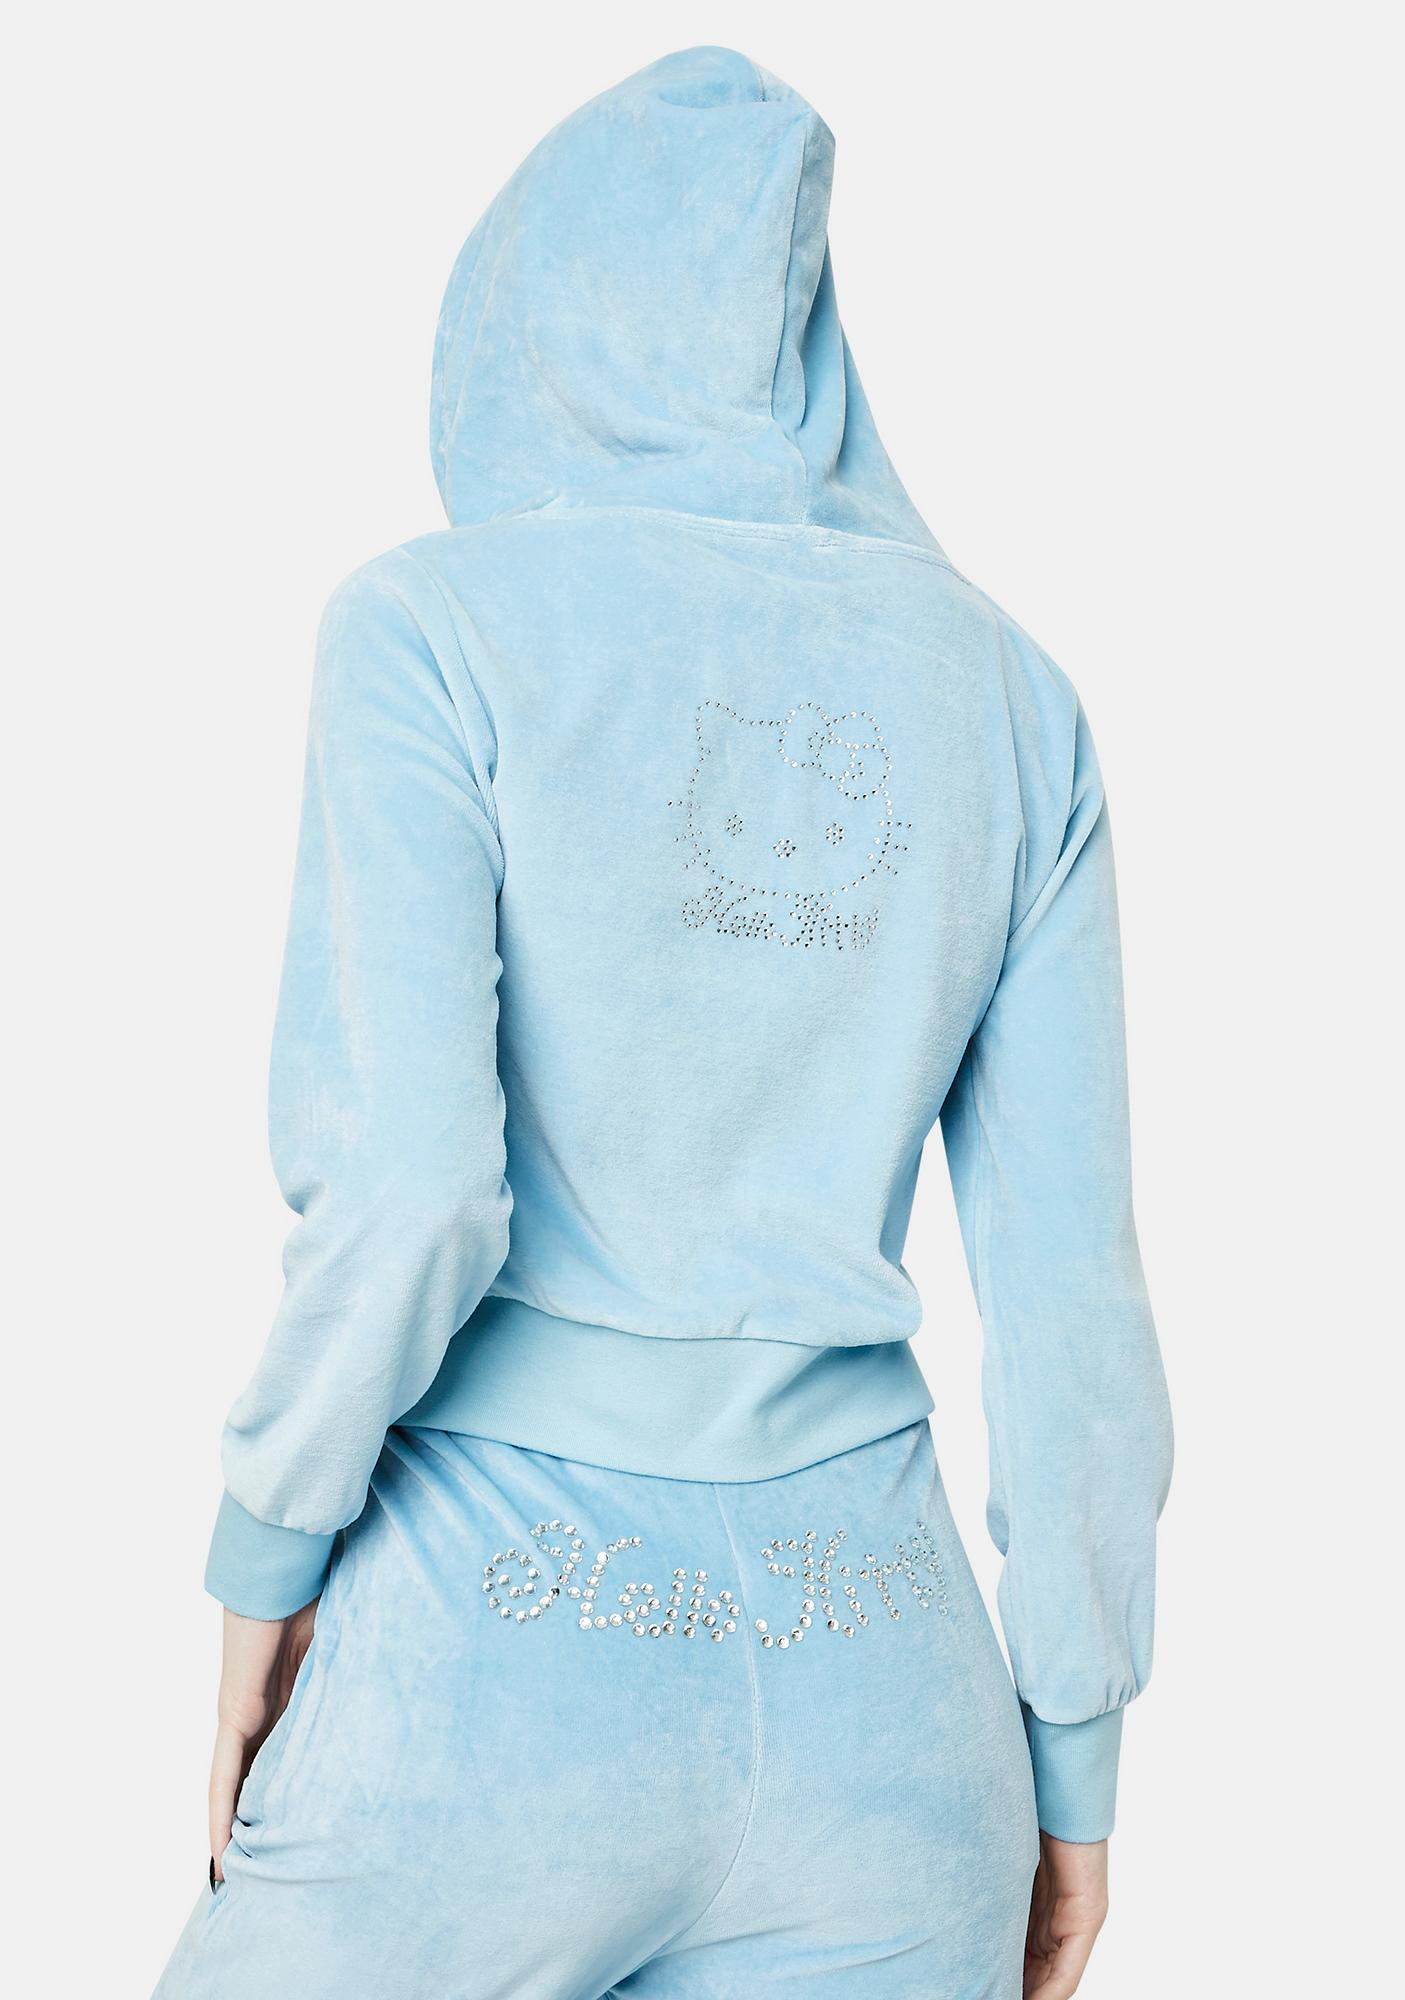 NEW GIRL ORDER Hello Kitty Velour Zip Up Hoodie